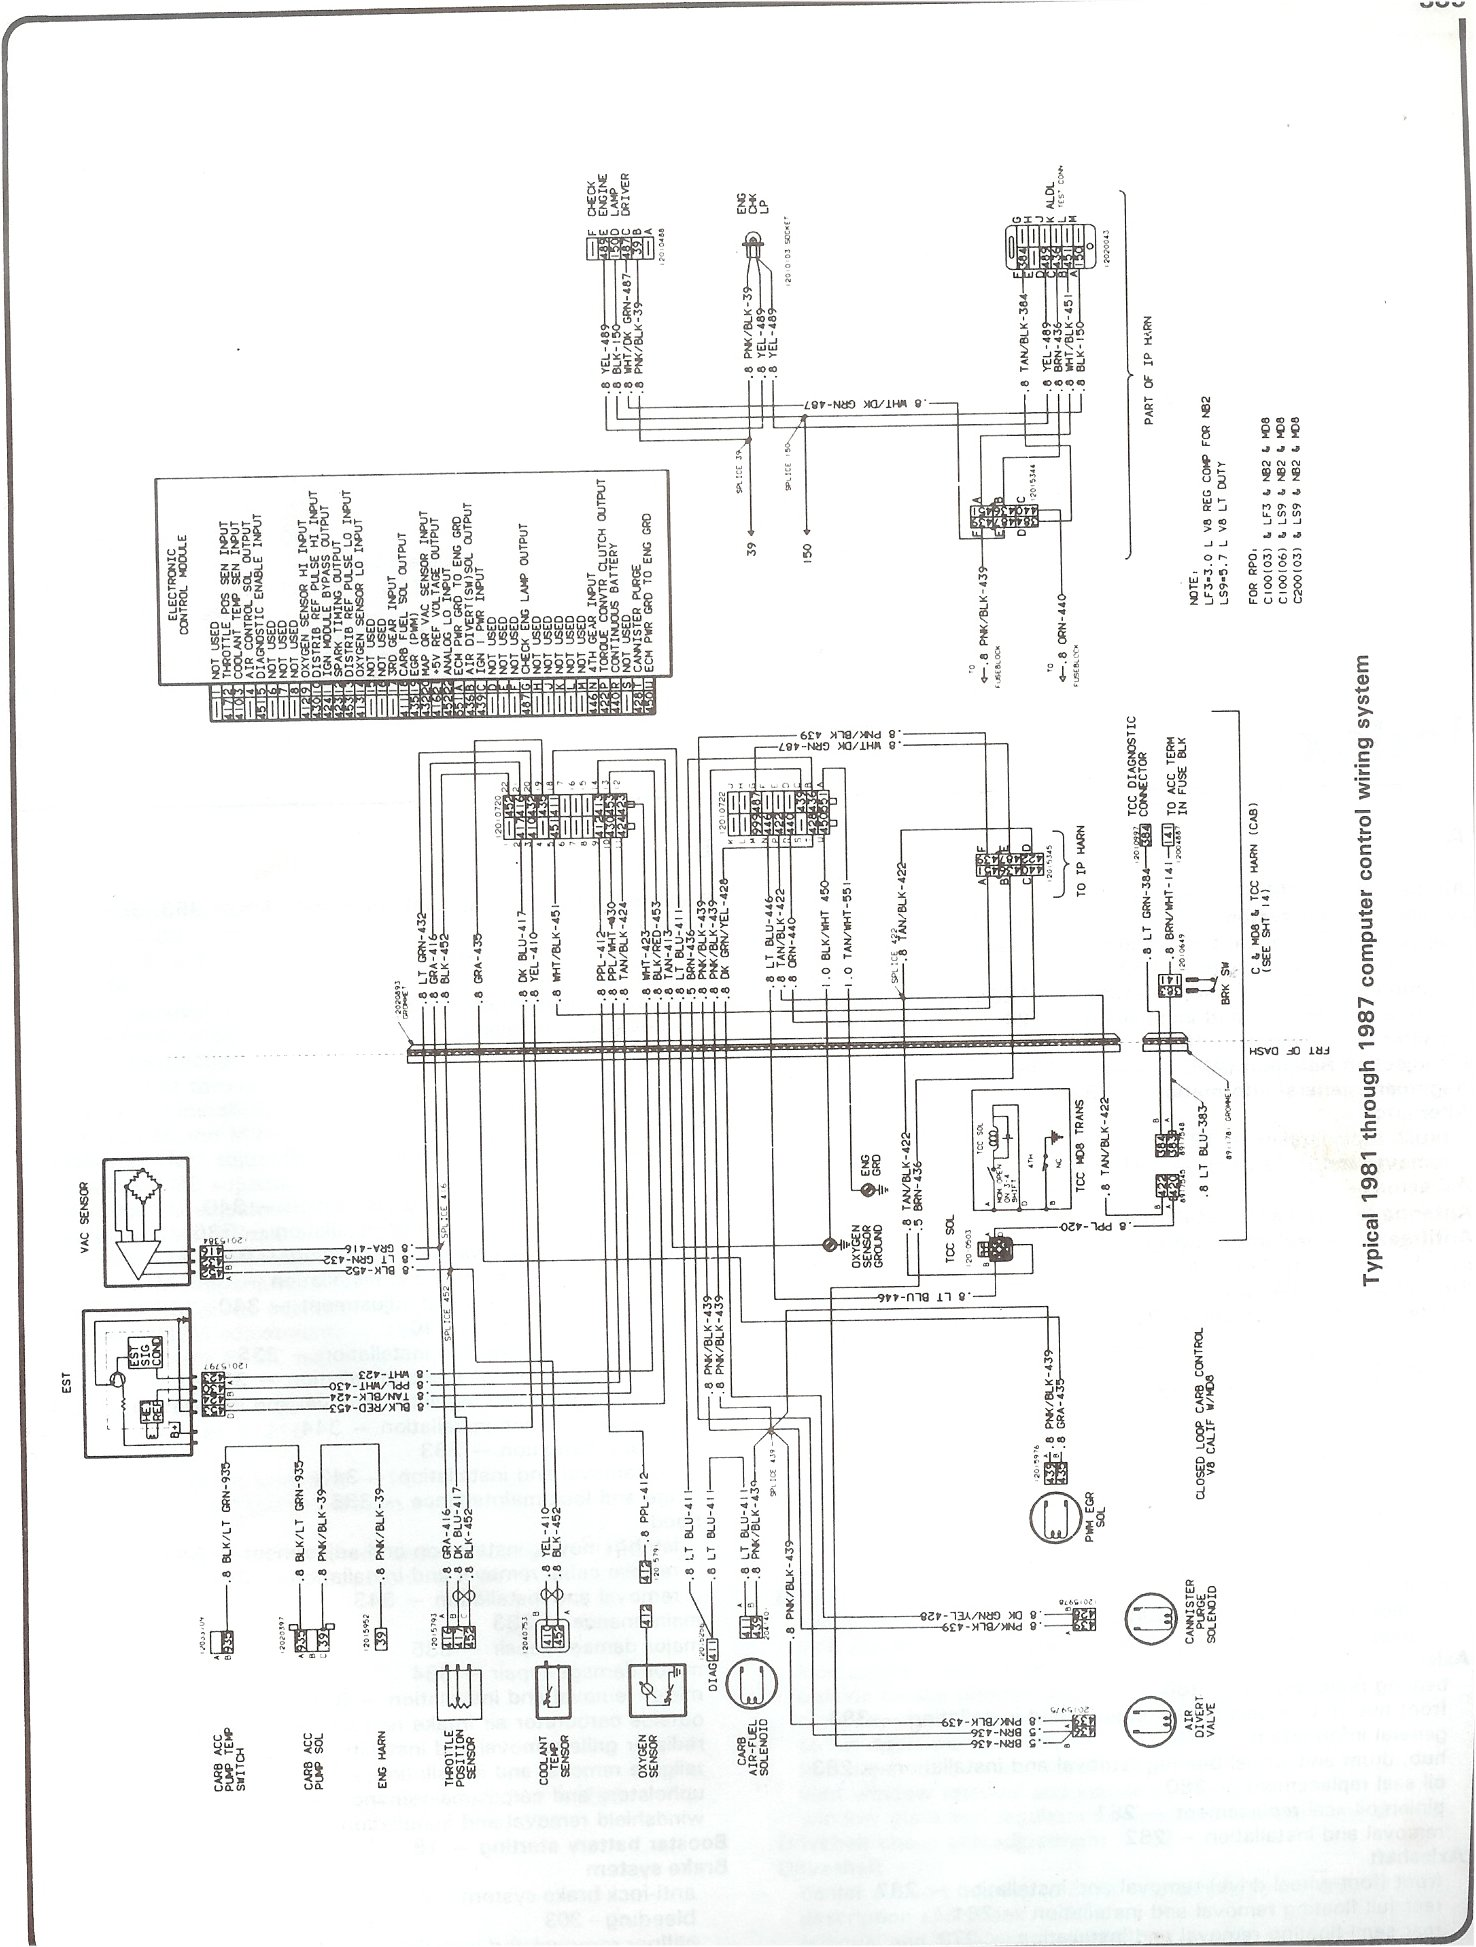 1979 K5 Blazer Wiring Diagram Reveolution Of Gm In Dash Ignition Switch Complete 73 87 Diagrams Rh Forum 87chevytrucks Com Charging System Hookup